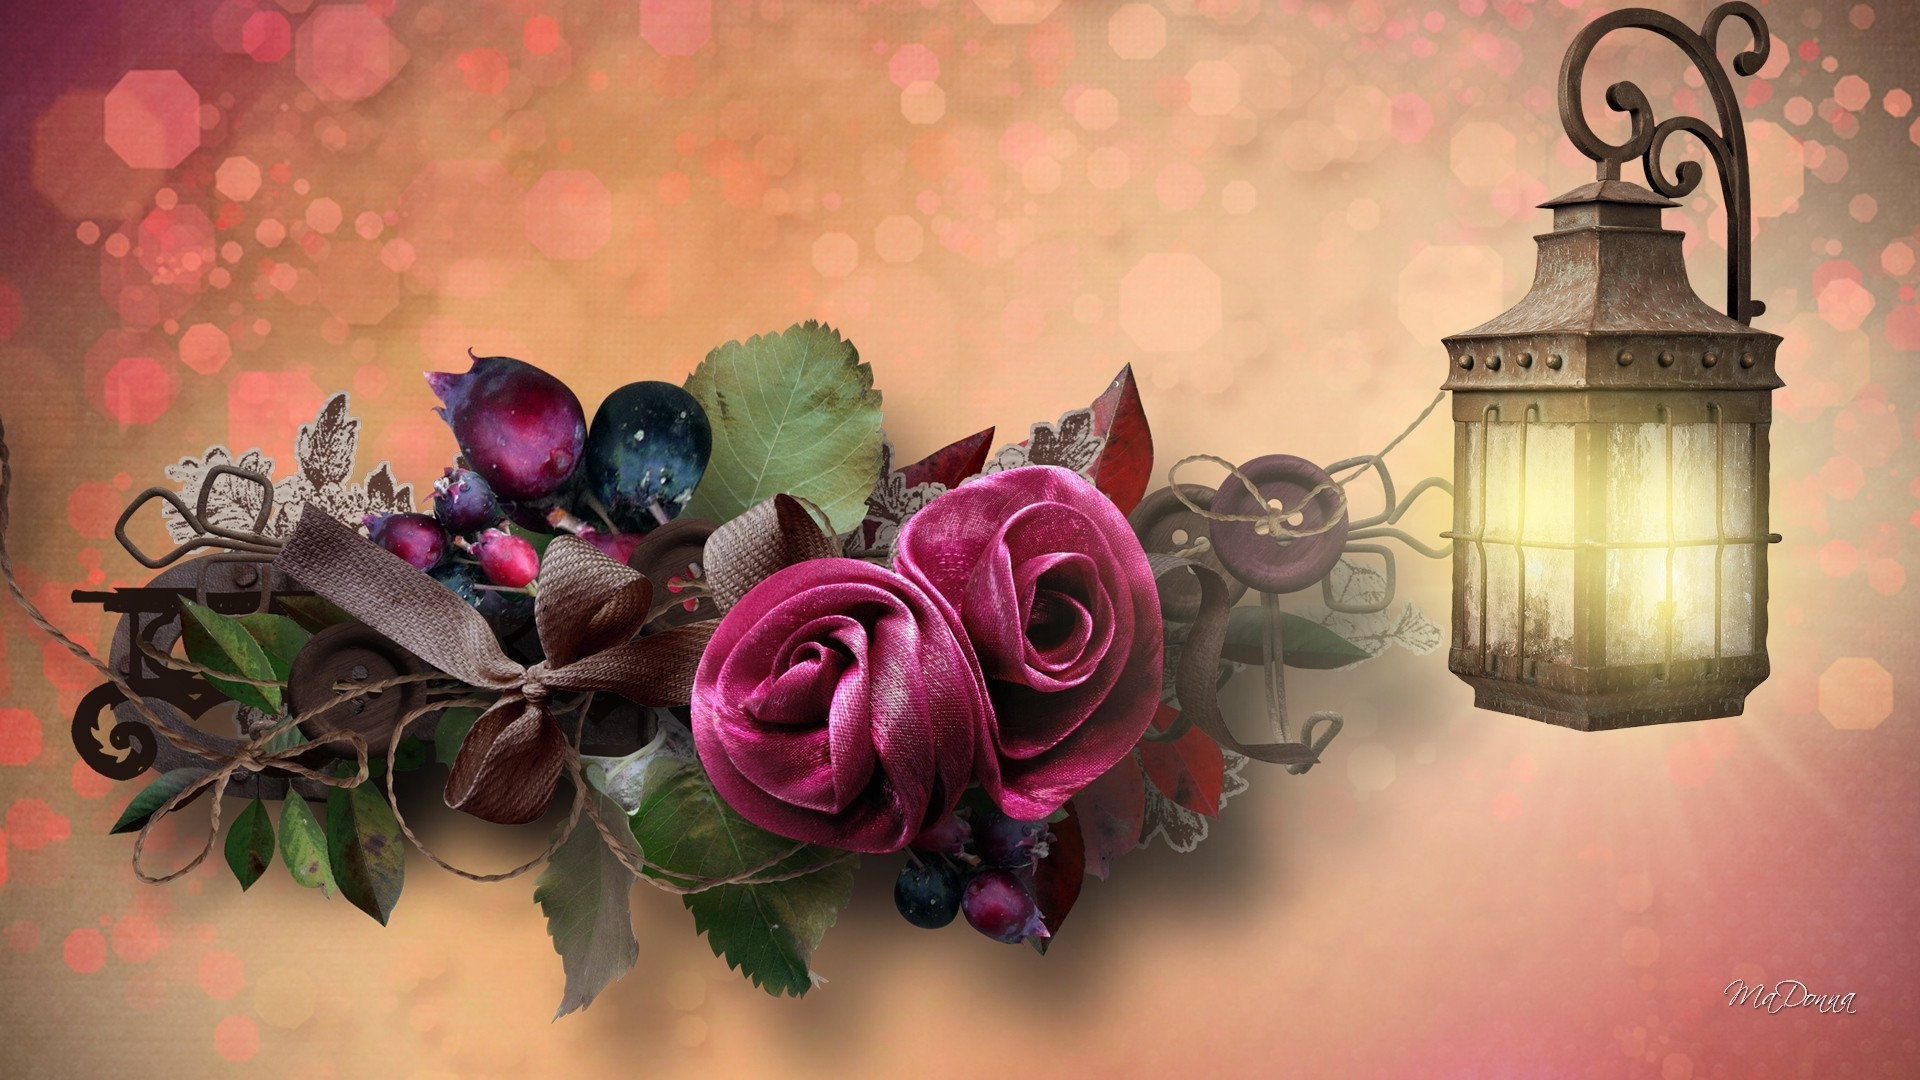 Berries Roses Bows Light Buttons Lamp Fall Floral Leaves Autumn Flowers  Riabbon Japanese Flower Wallpaper – 1920×1080